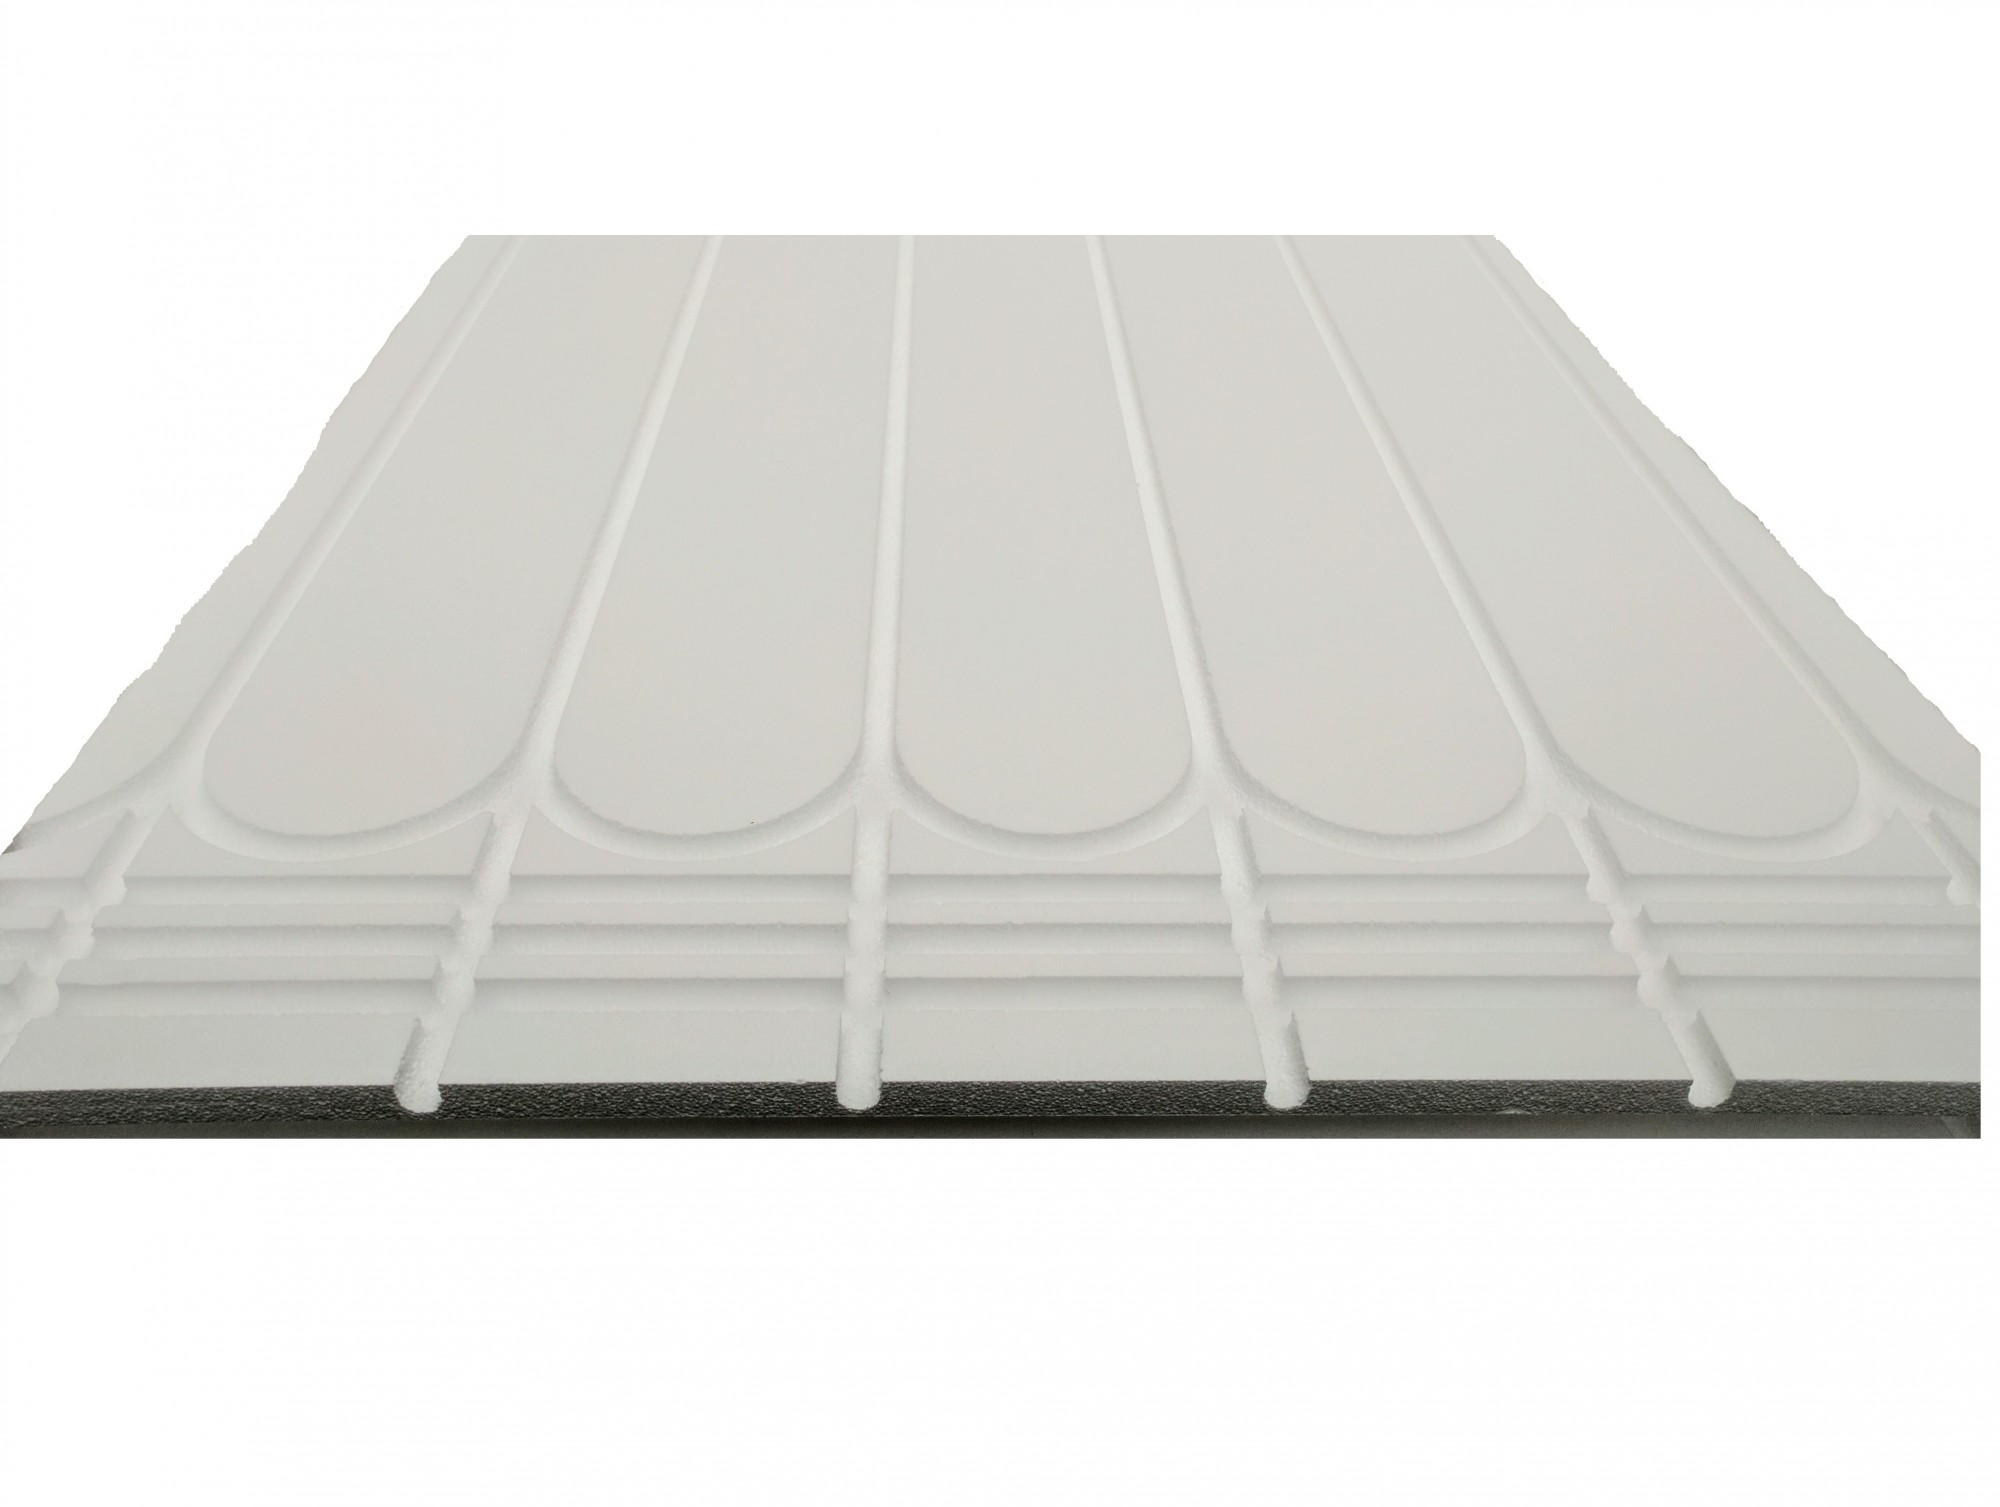 Image 1 of Floating Floor Panel for 20mm Pipe